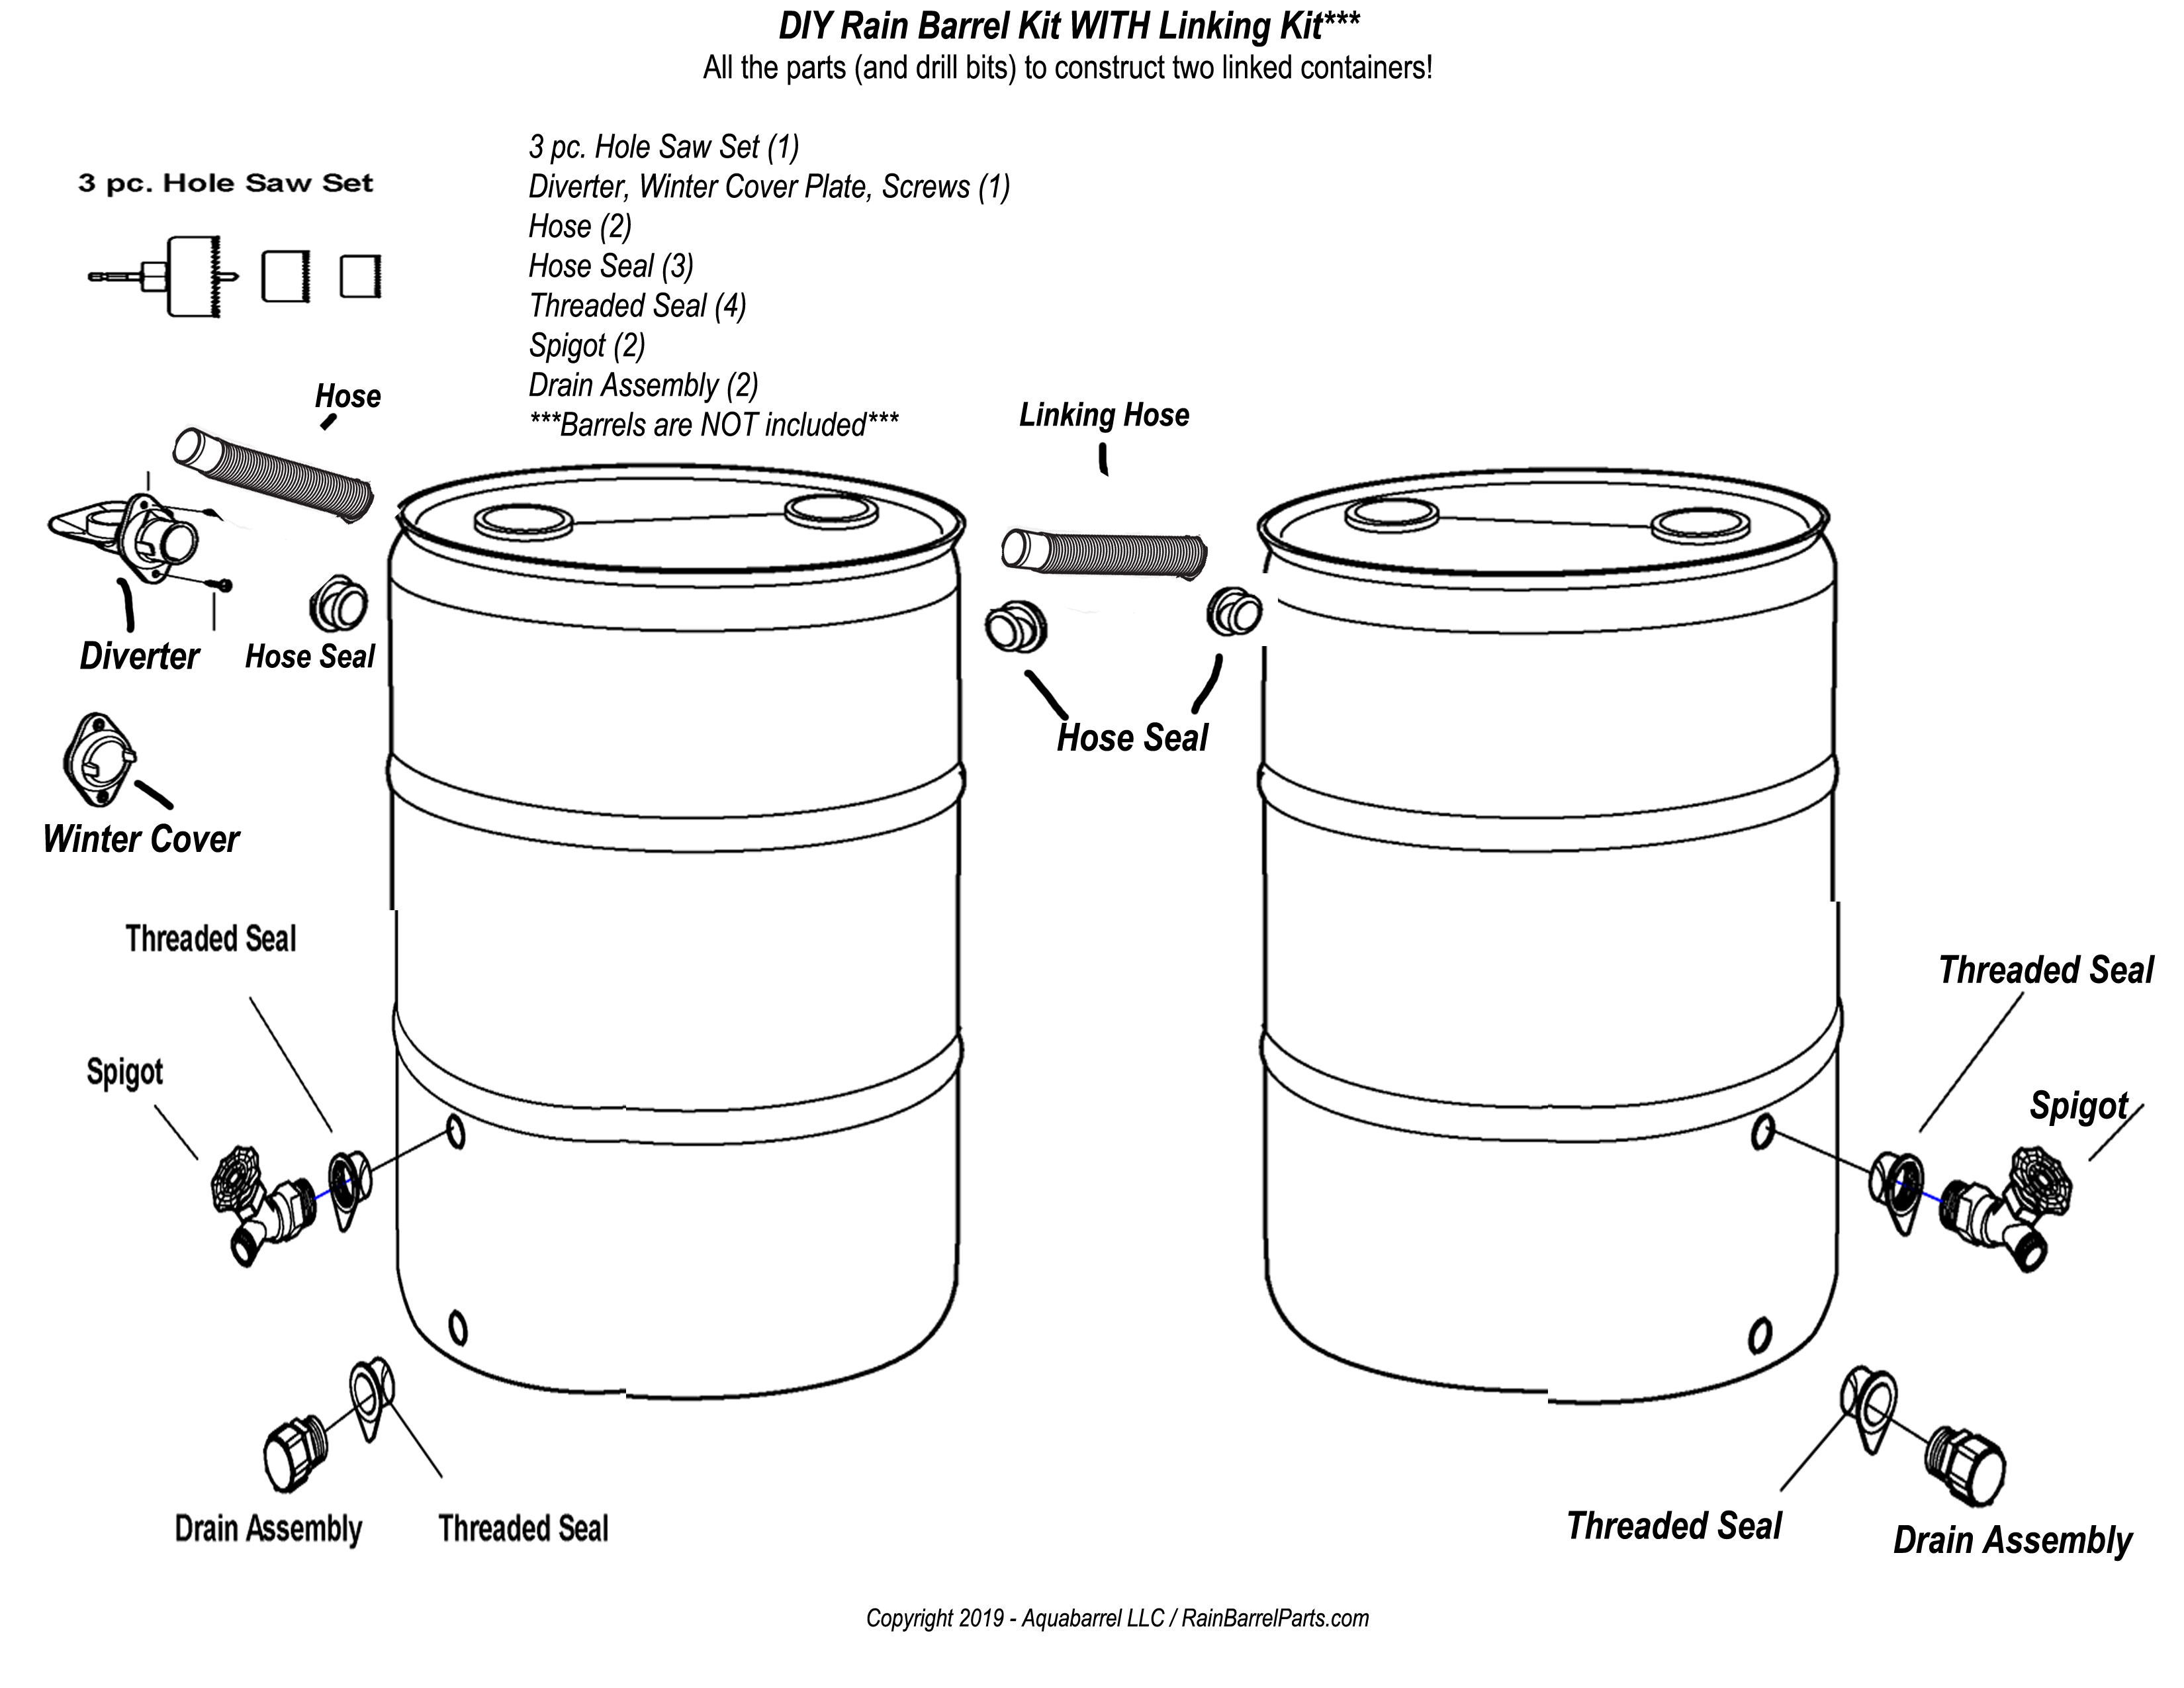 Universal EarthMinded Rain Barrel Kit with Linking Kit